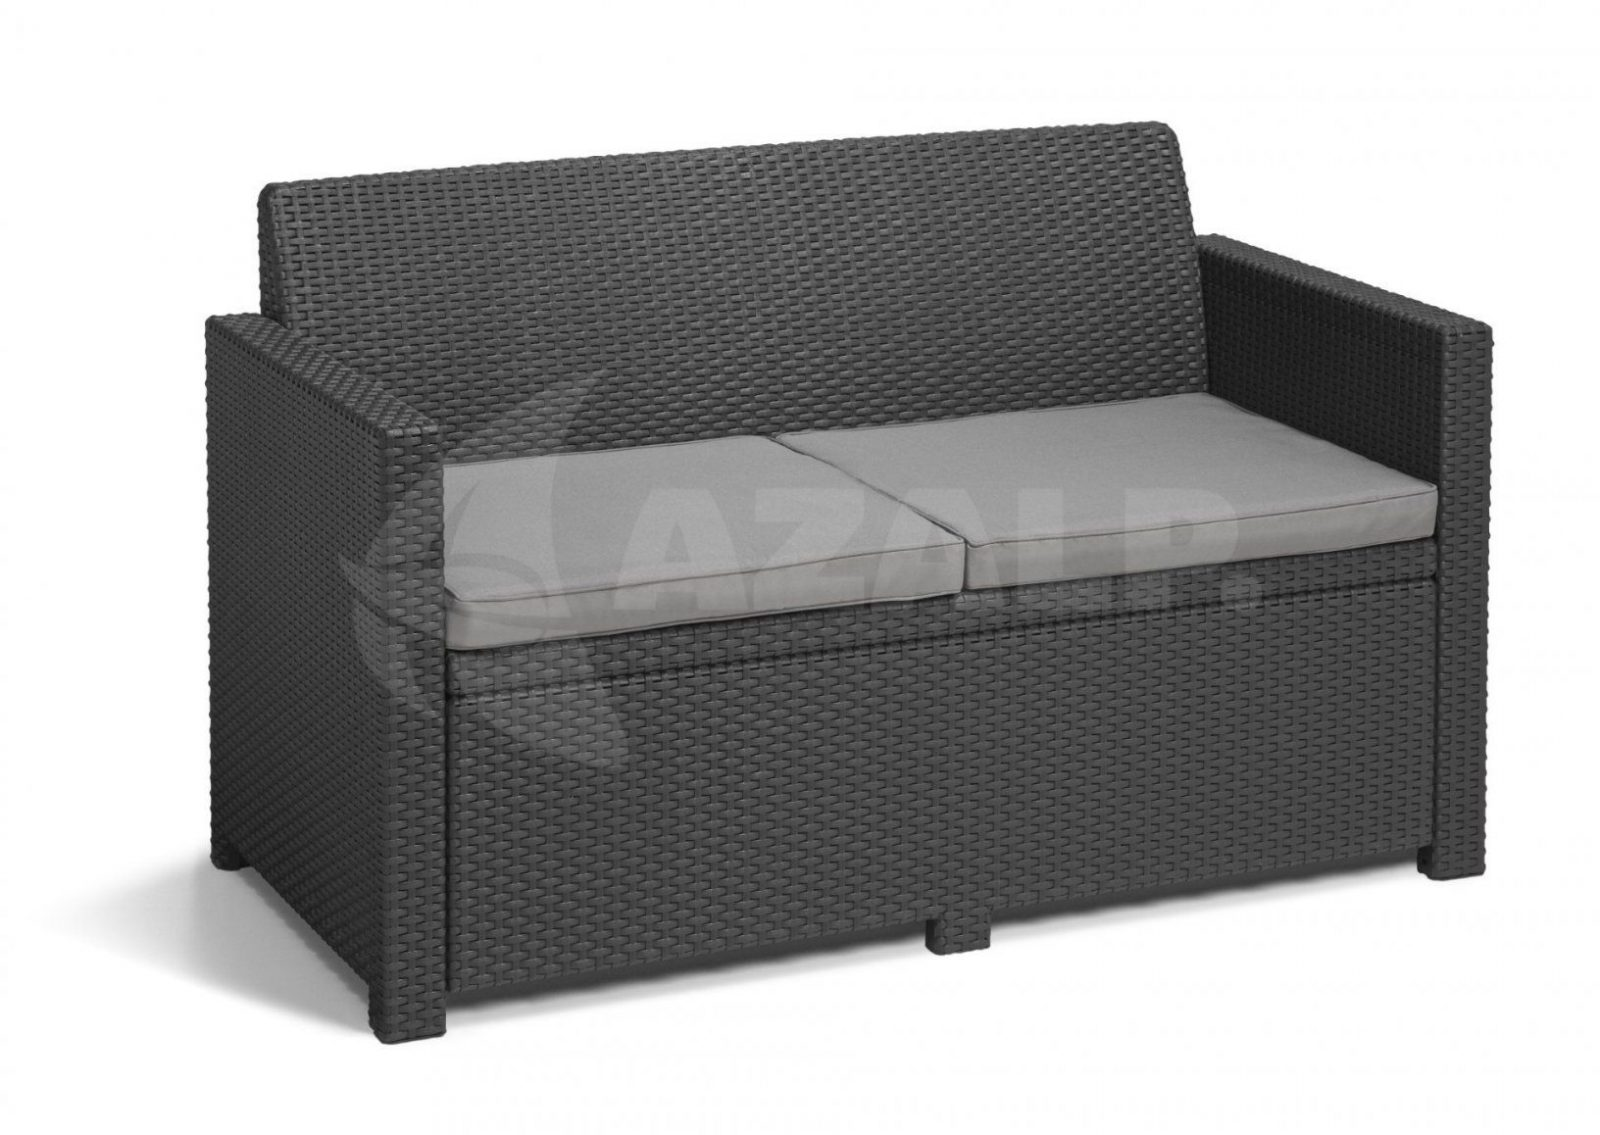 Allibert Merano Lounge Set Graphite Kopen Bij Azalpnl von Allibert Lounge Set Merano Bild